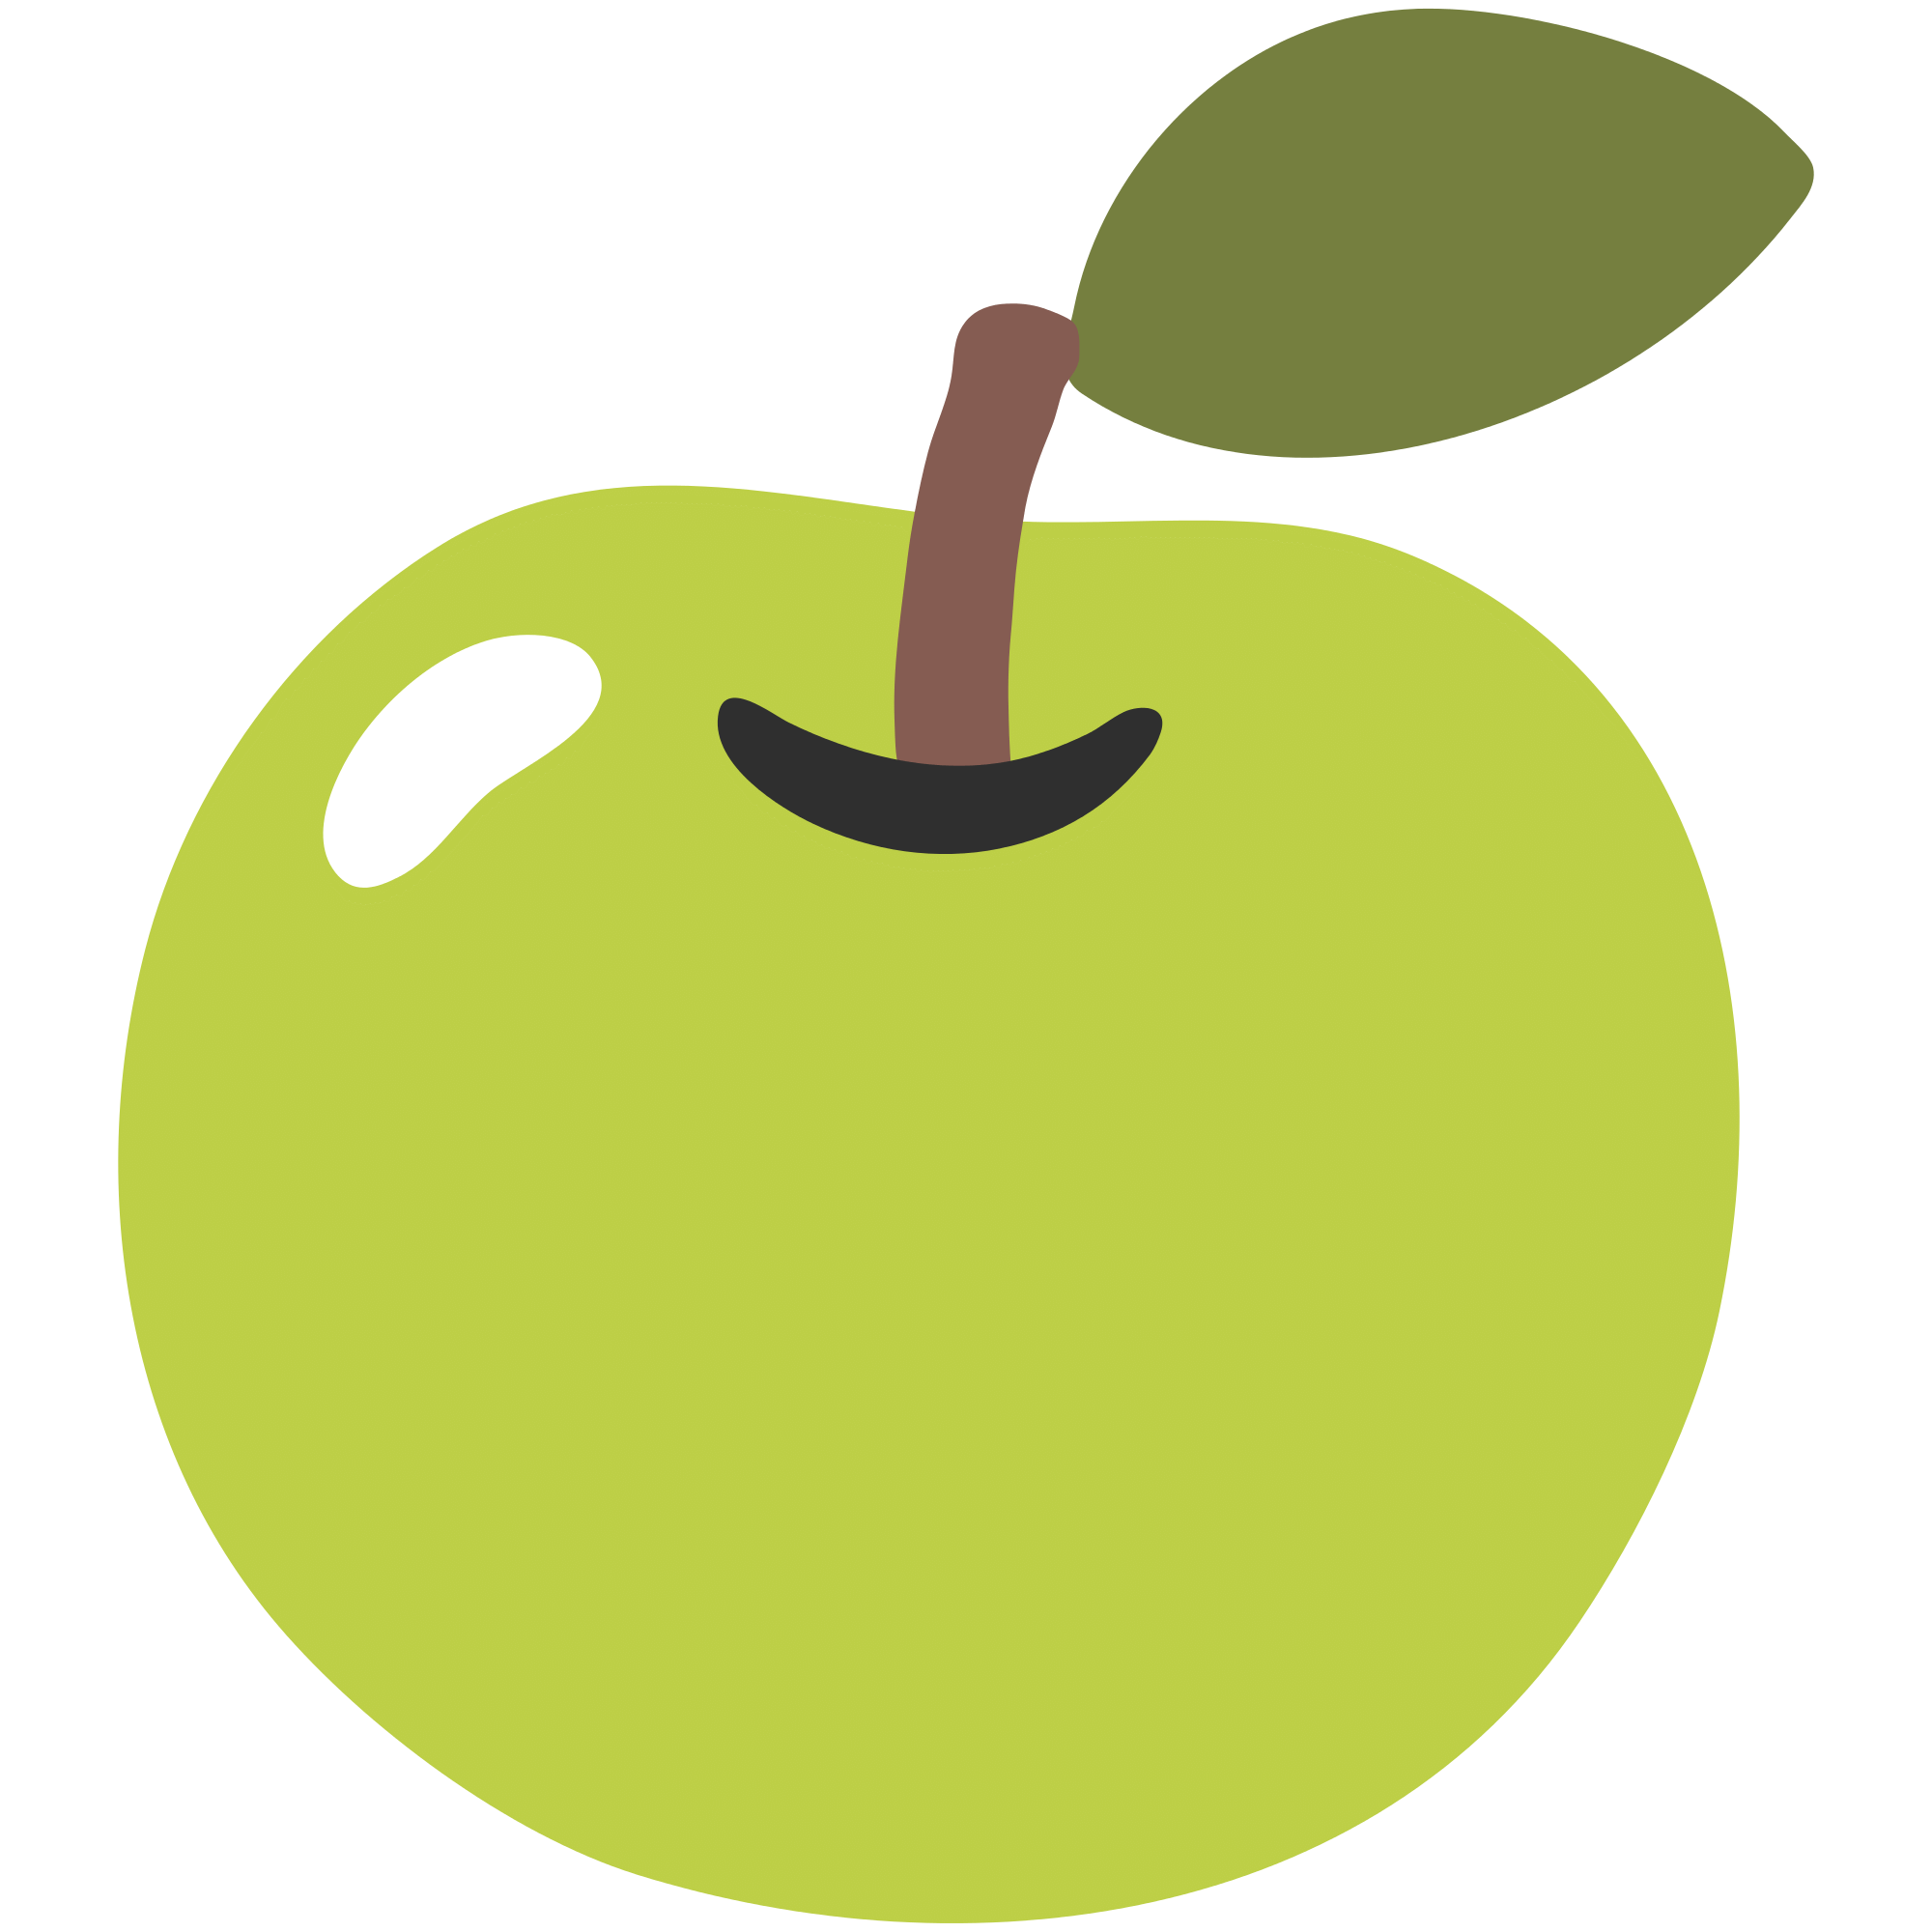 Apple emoji png. Transparent stickpng download